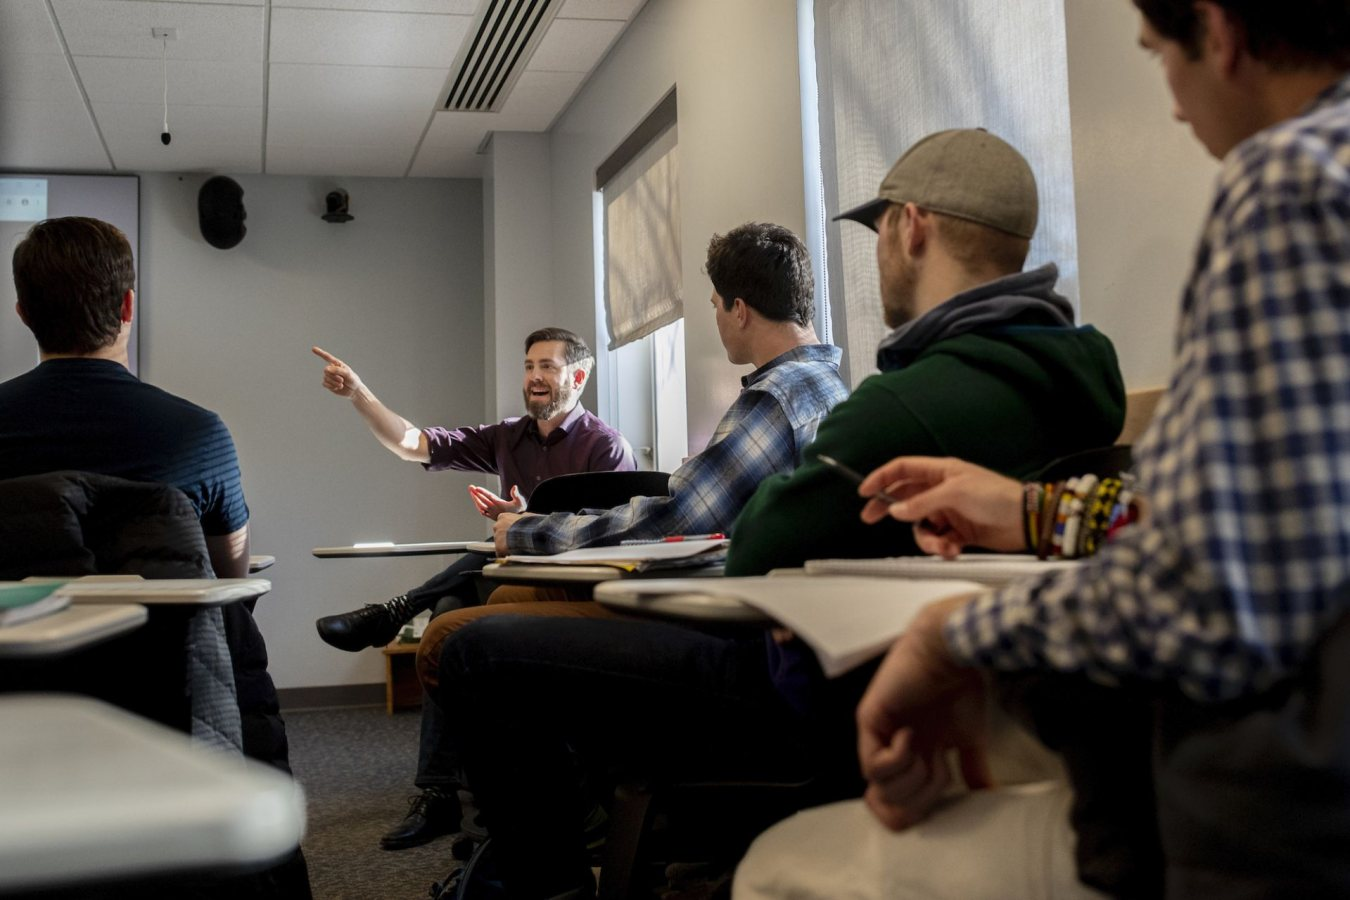 """Dr. Kelton McMahon '05 of the University of Rhode Island was on campus today, Jan. 14, to give a talk, """"Transforming the Study of Ocean Food Webs:  Atoms to Ecosystems,"""" sponsored by the biology department (Monday, January 14th – 4:10 – 5:30 pm Carnegie Science, Room 204).  In these photographs, oceanic ecogeochemist Kelton McMahon '05 speaks to a Junior Seminar taught by Larissa Williams, associate professor of biology. It's considered a Purposeful Work infusion course. Time: 1-4pm in Carnegie 111.   Please note: Textbooks may be ordered a few weeks in advance of, and through the end of each semester BIO 460 - Junior Seminar Reading original biological literature is an essential skill for biology majors. Focusing on the topics addressed by invited speakers for the semester's biology seminar program, students review articles, write analyses, and contribute oral presentations in a small group format. Students attend afternoon and/or evening seminars and discuss the content, context, and presentation of original investigations."""